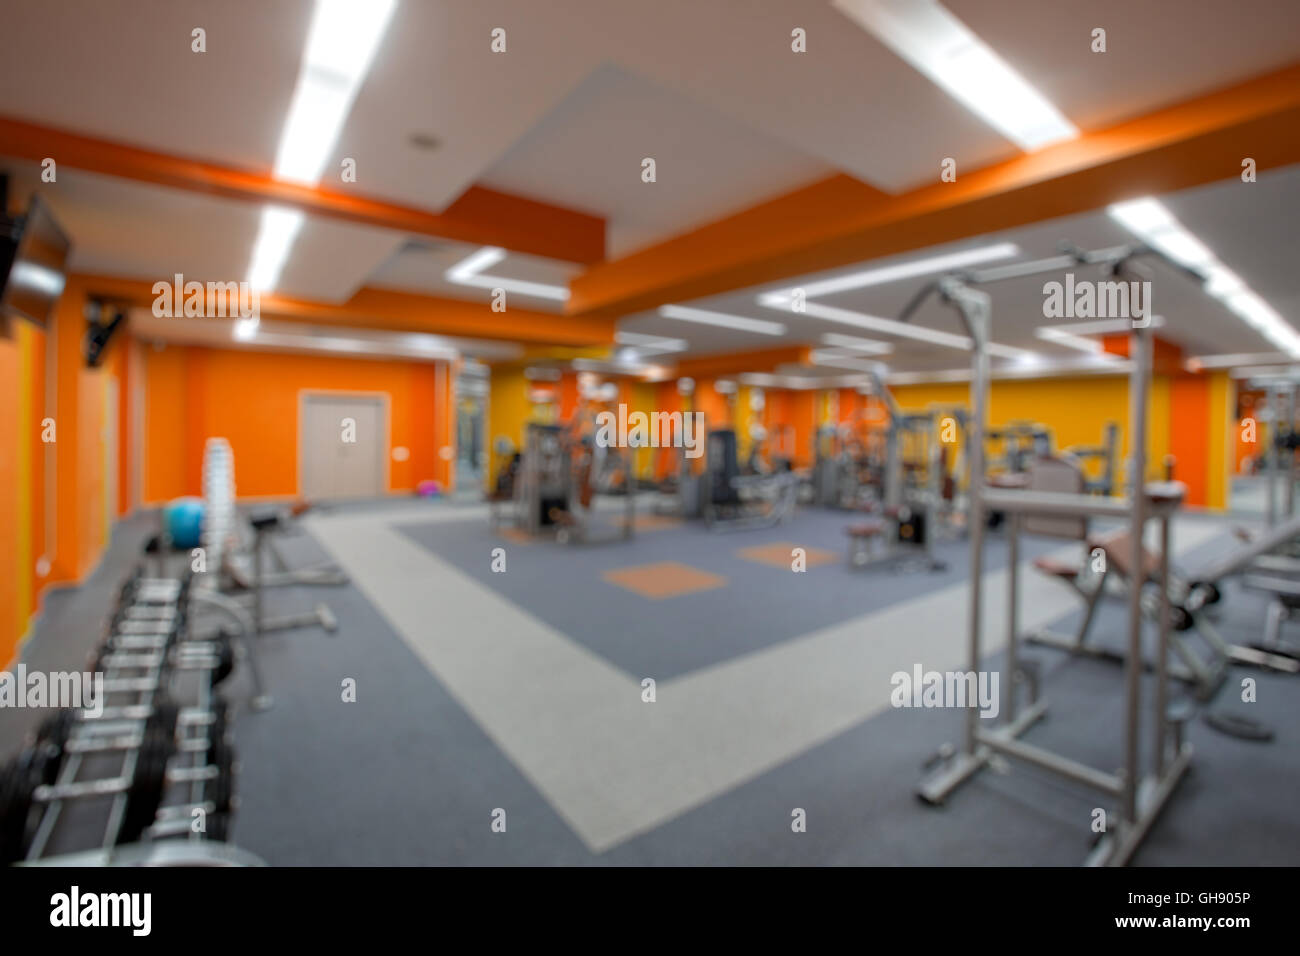 Blur abstract background modern fitness center lifestyle with